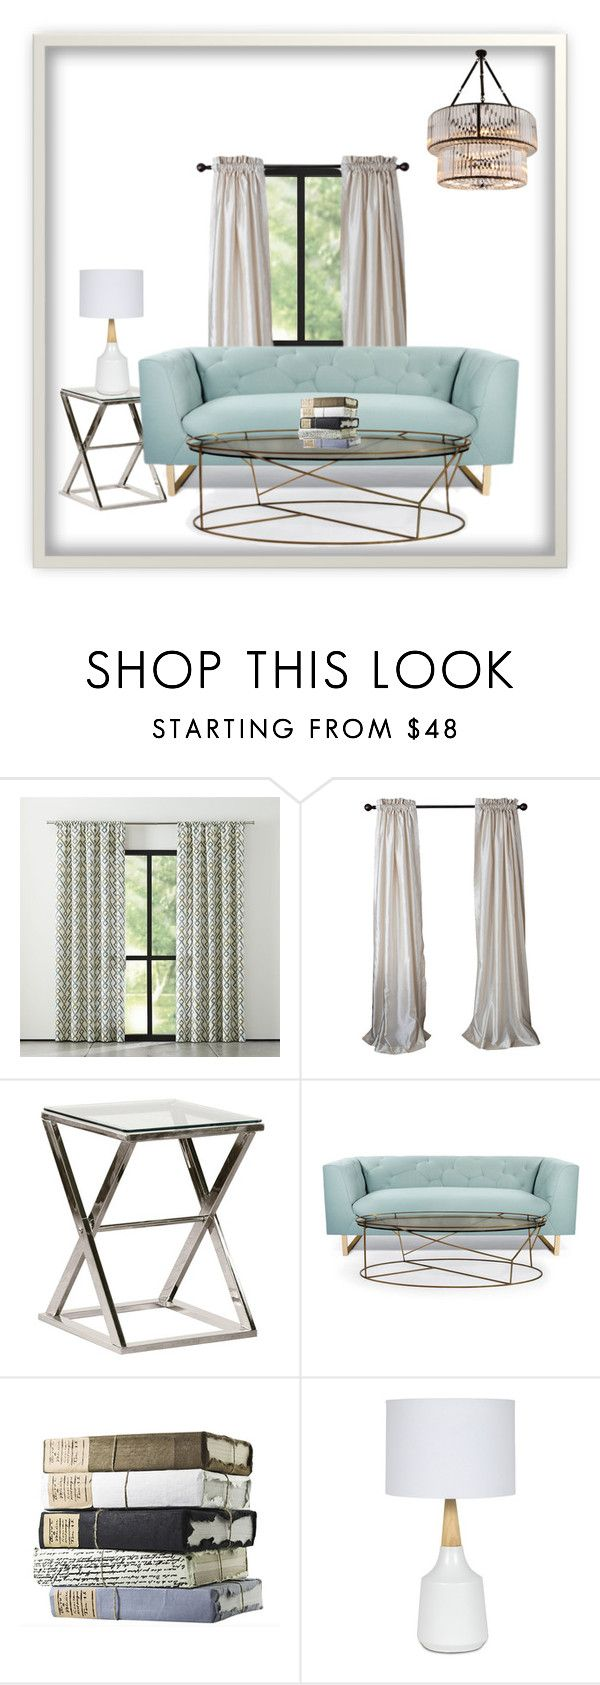 """""""Living Room"""" by ac-awesome ❤ liked on Polyvore featuring interior, interiors, interior design, home, home decor, interior decorating, Nimbus, Eichholtz and living room"""